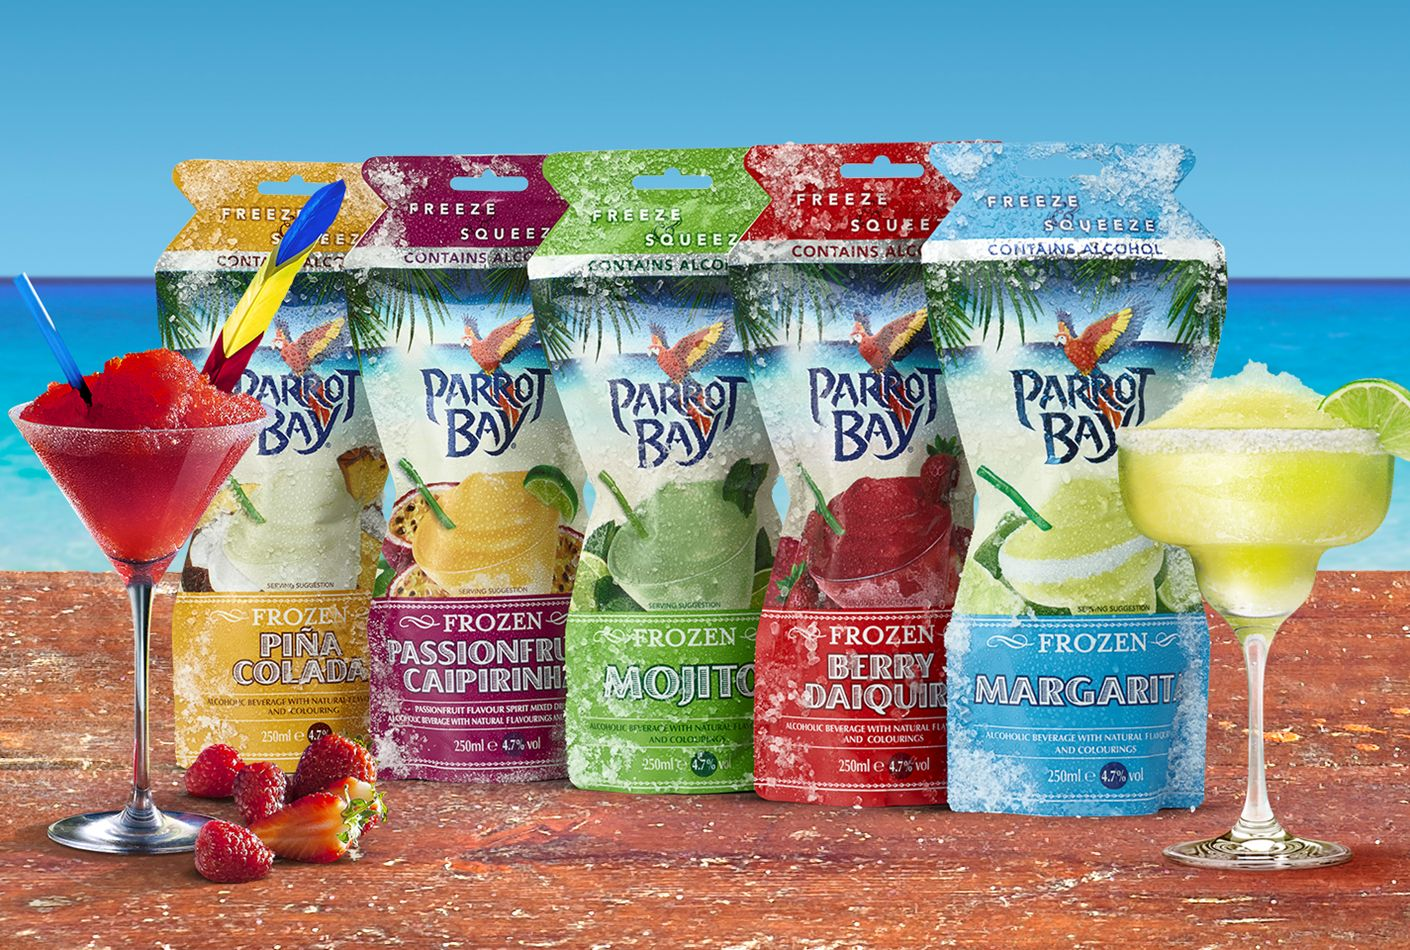 Parrot Bay Frozen Pouch Drinks & Cocktail Recipes – The Bar